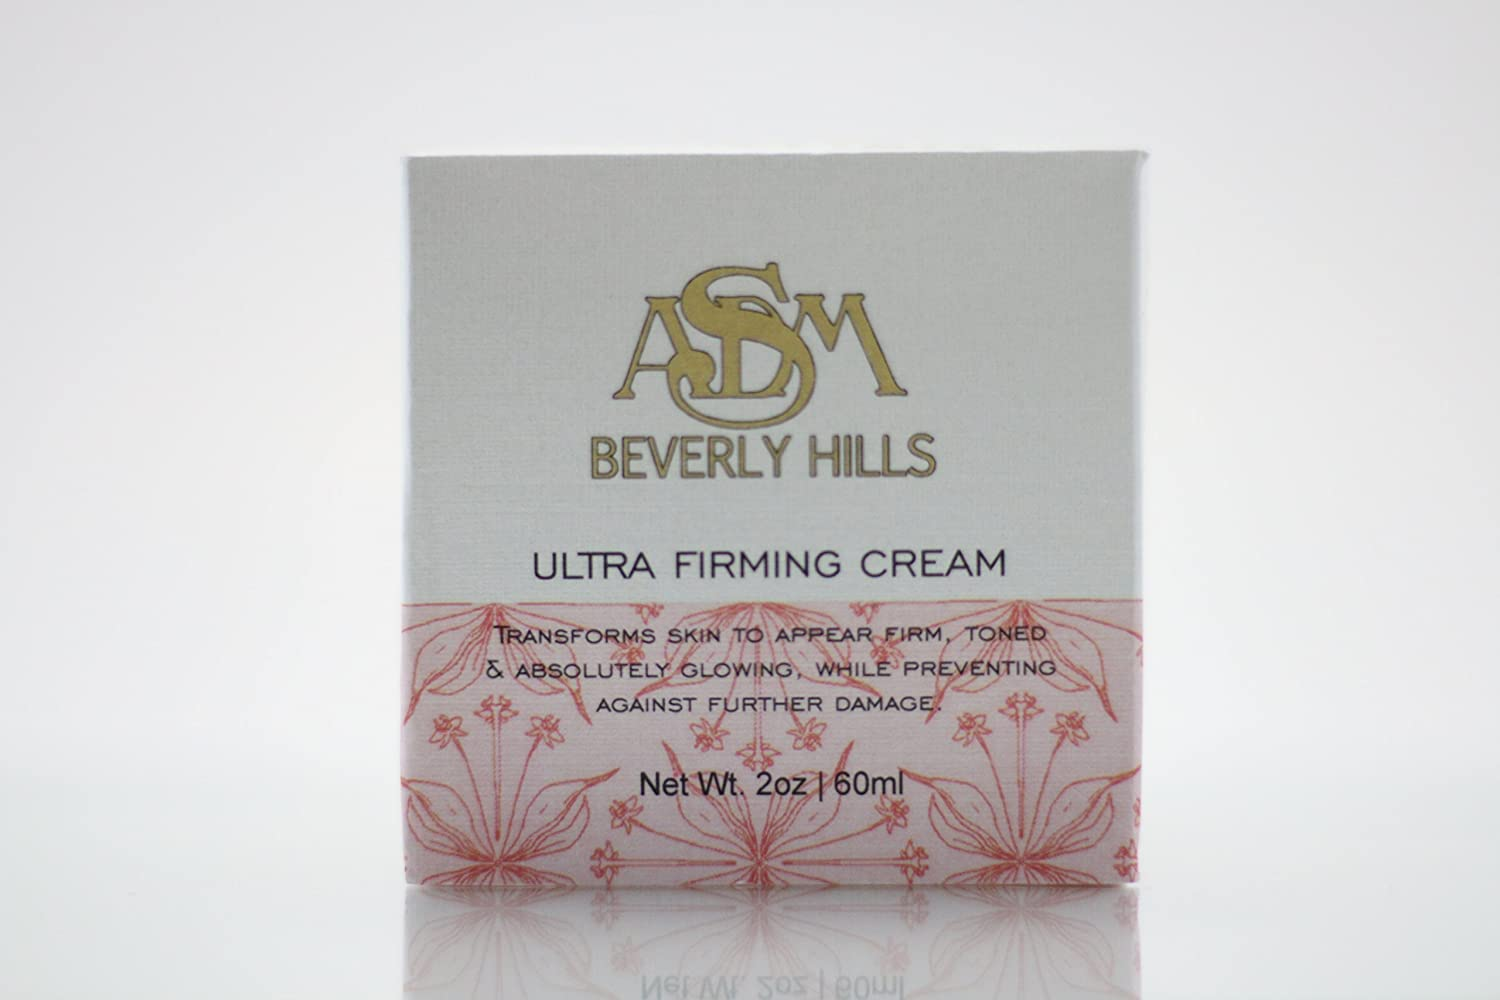 Beverly hill md lift and firming reviews - Amazon Com Face Lift Cream Firming Face Cream 2oz Matrixyl 3000 Peptides Argireline Hyaluronic Acid Asdm Beverly Hills Facial Treatment Products